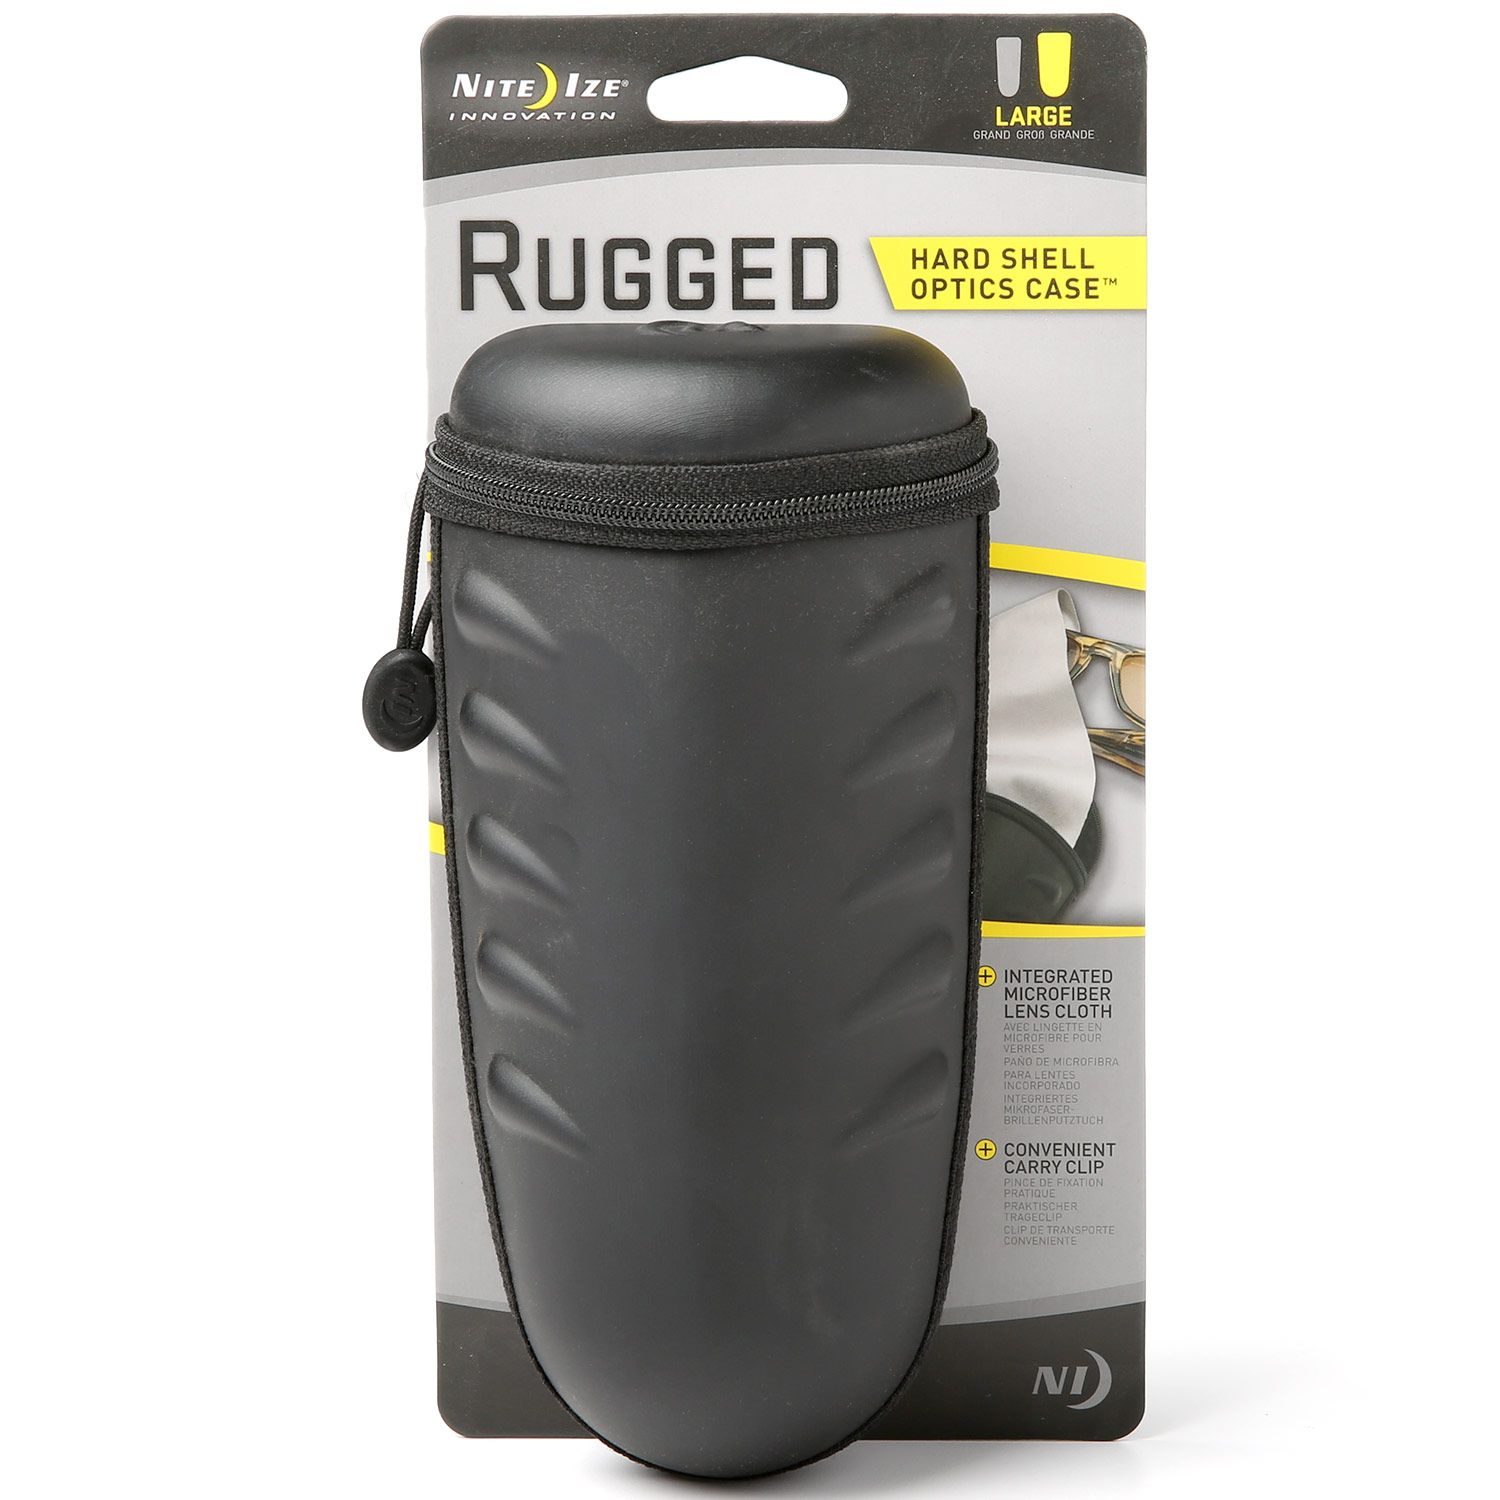 Your Safety Glasses Protect You Do The Same For Them With This Large Rugged Hardshell Case Available From Duluth Trading Case Glasses Case Rugs